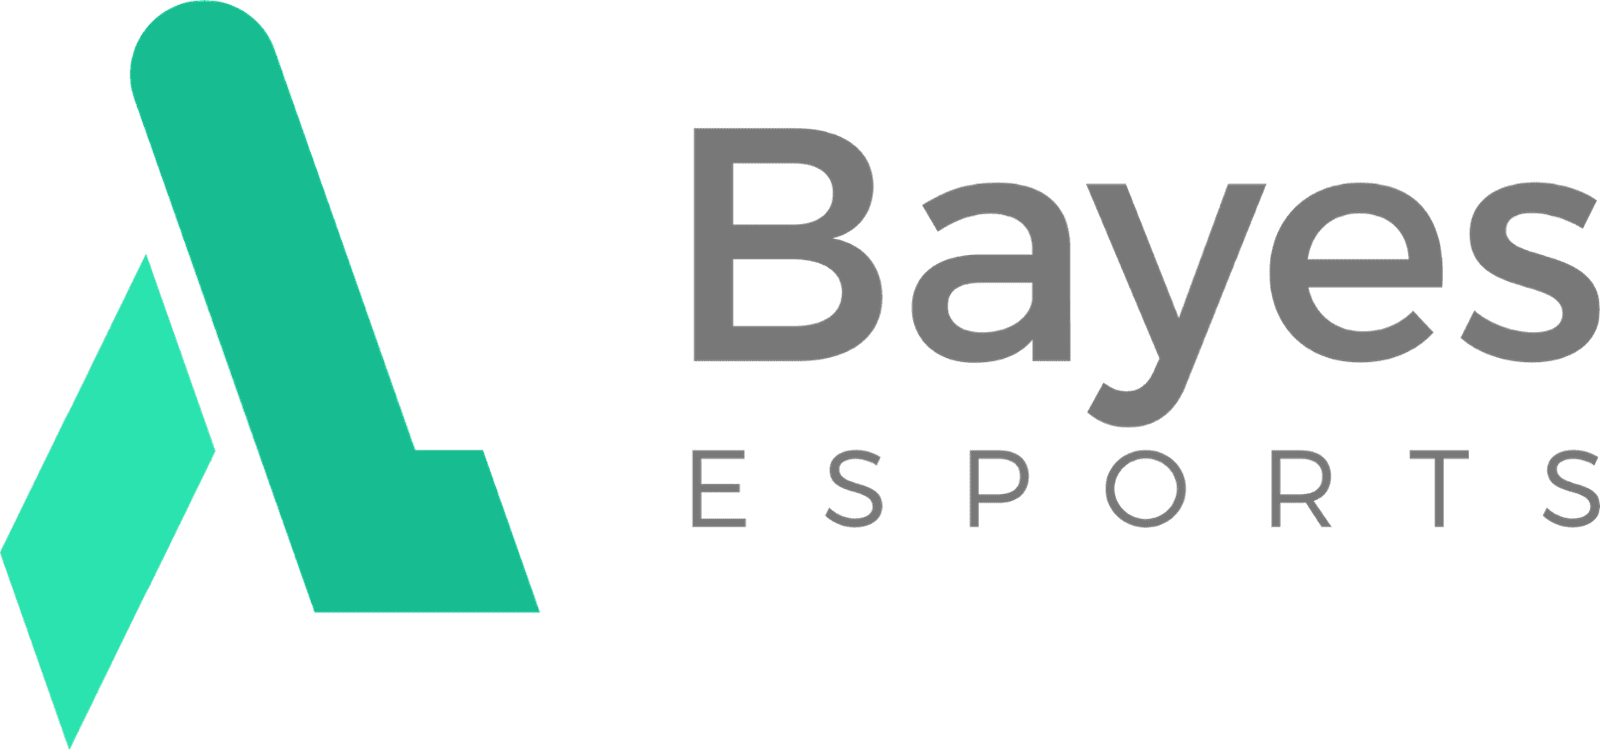 EarlyGame joins forces with Bayes and Shadow